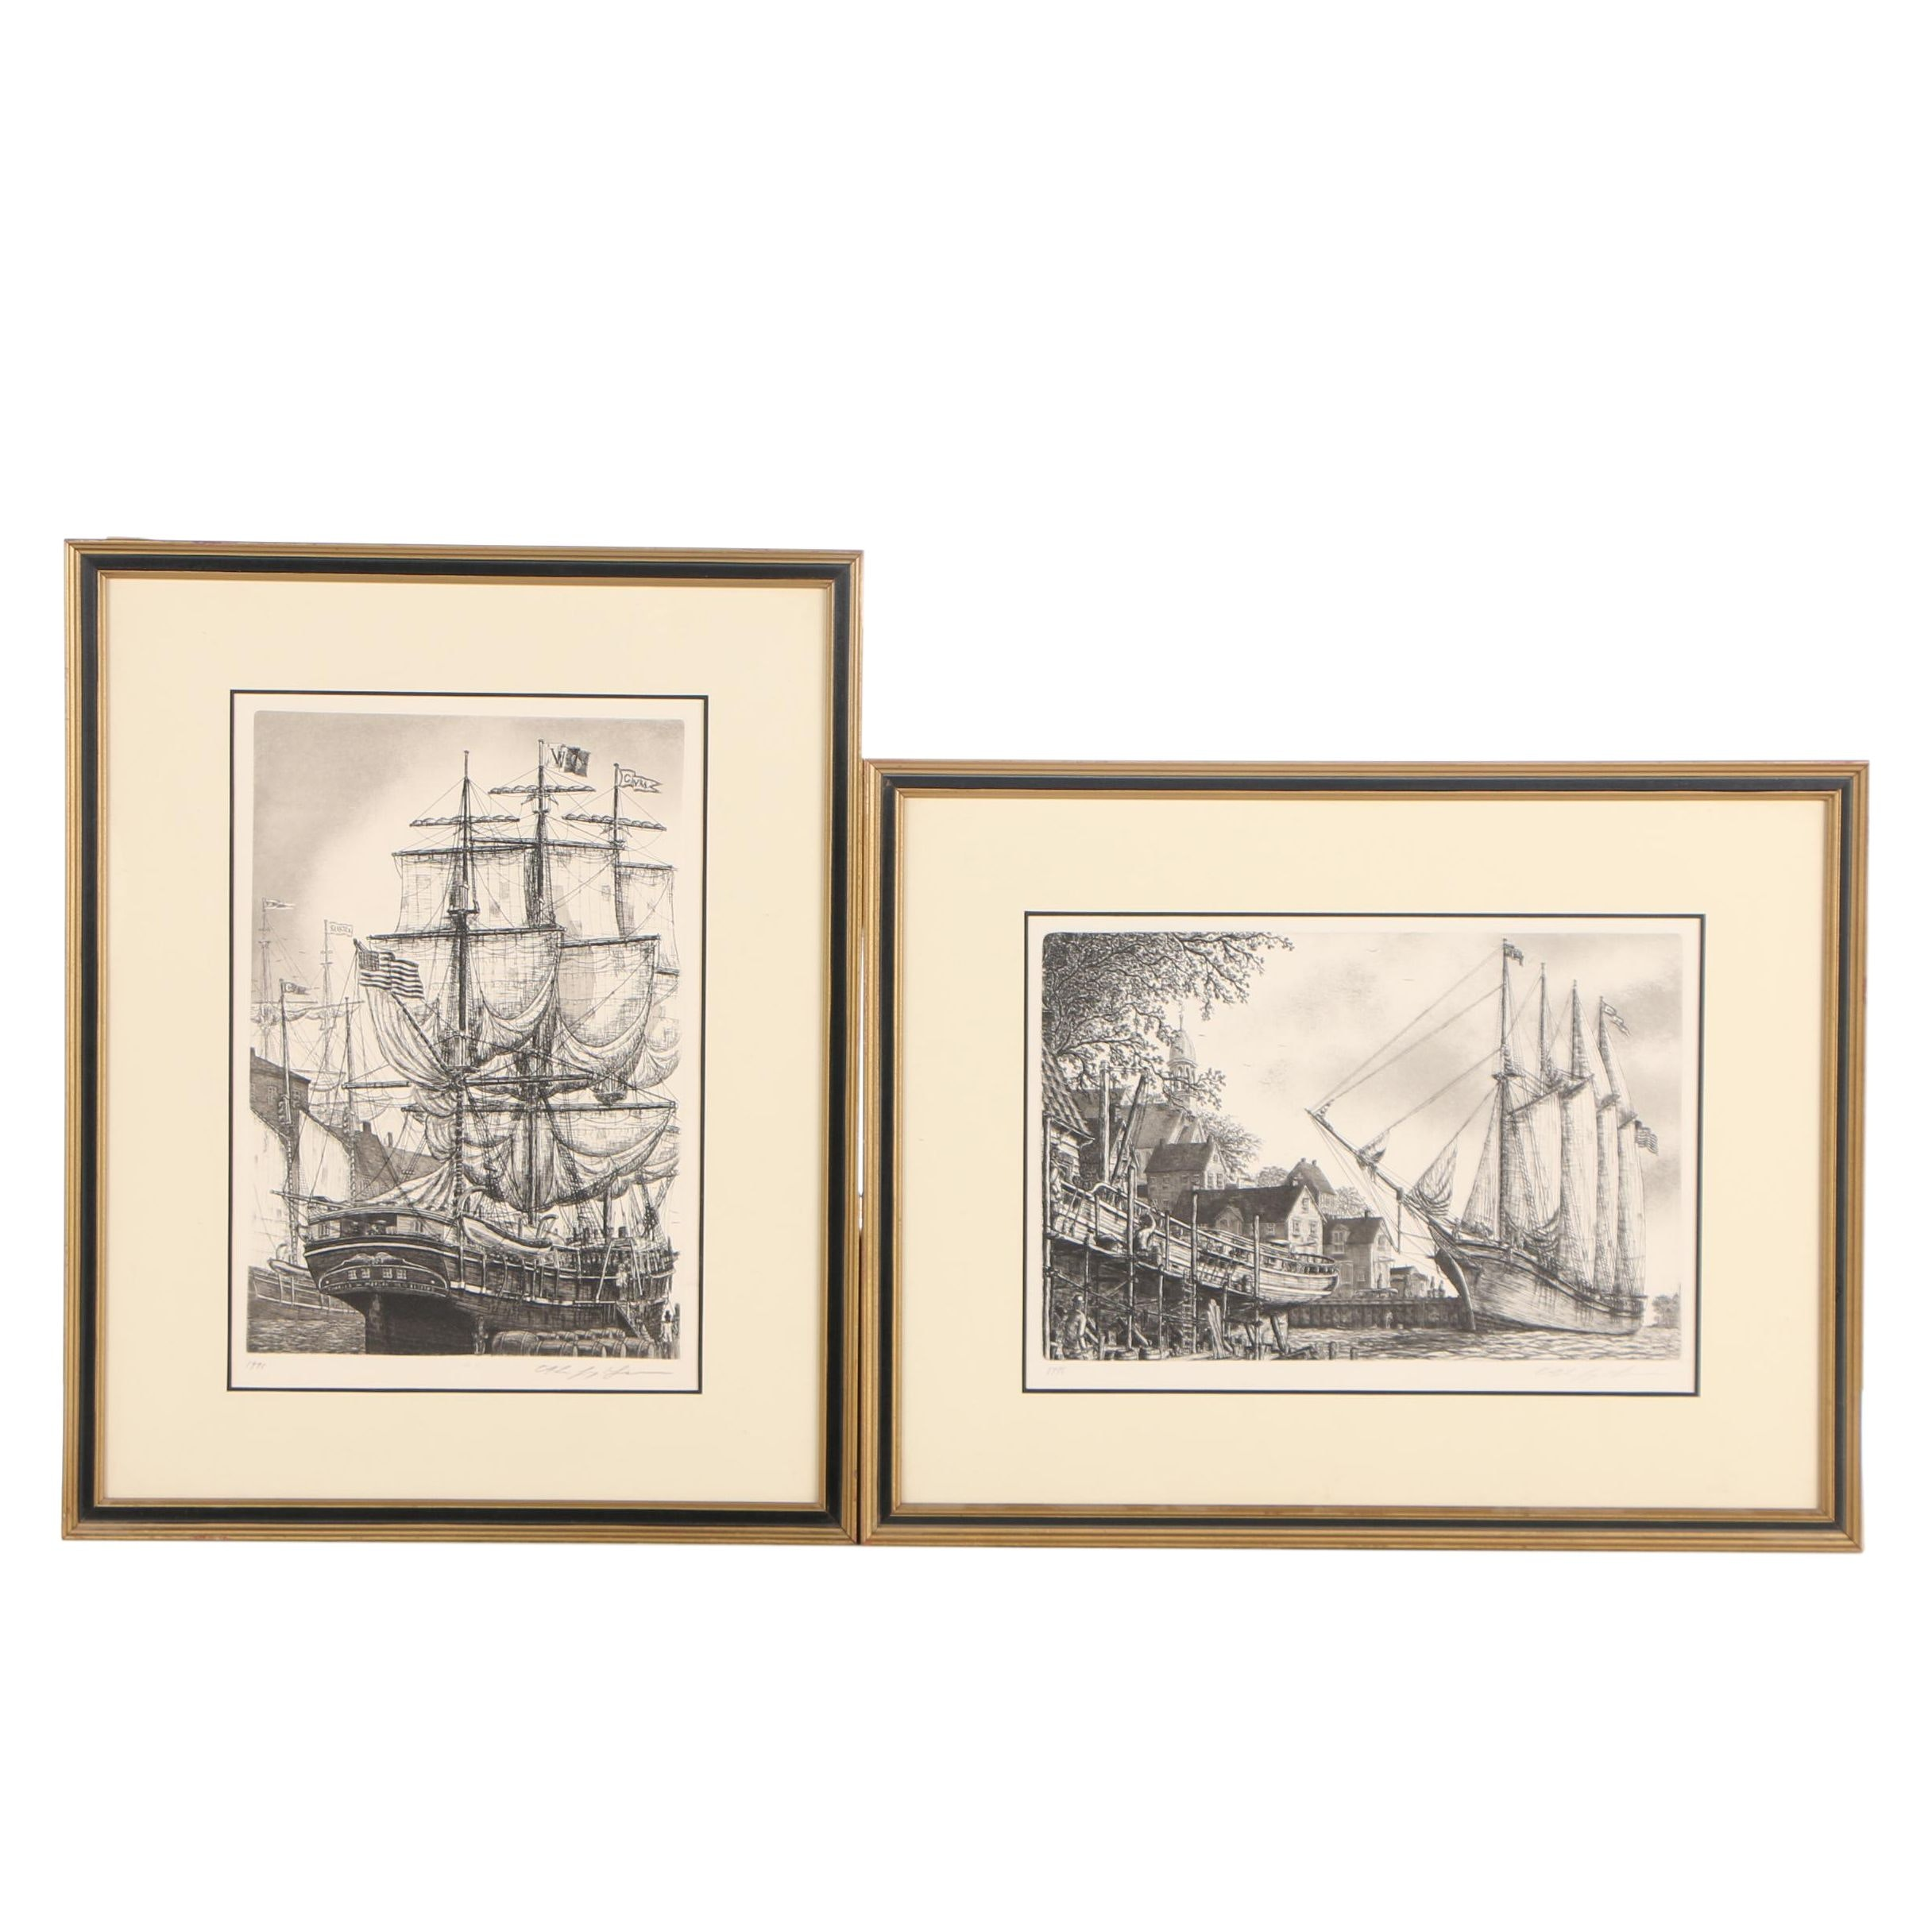 Alan Jay Gaines Etchings of Tall Ships